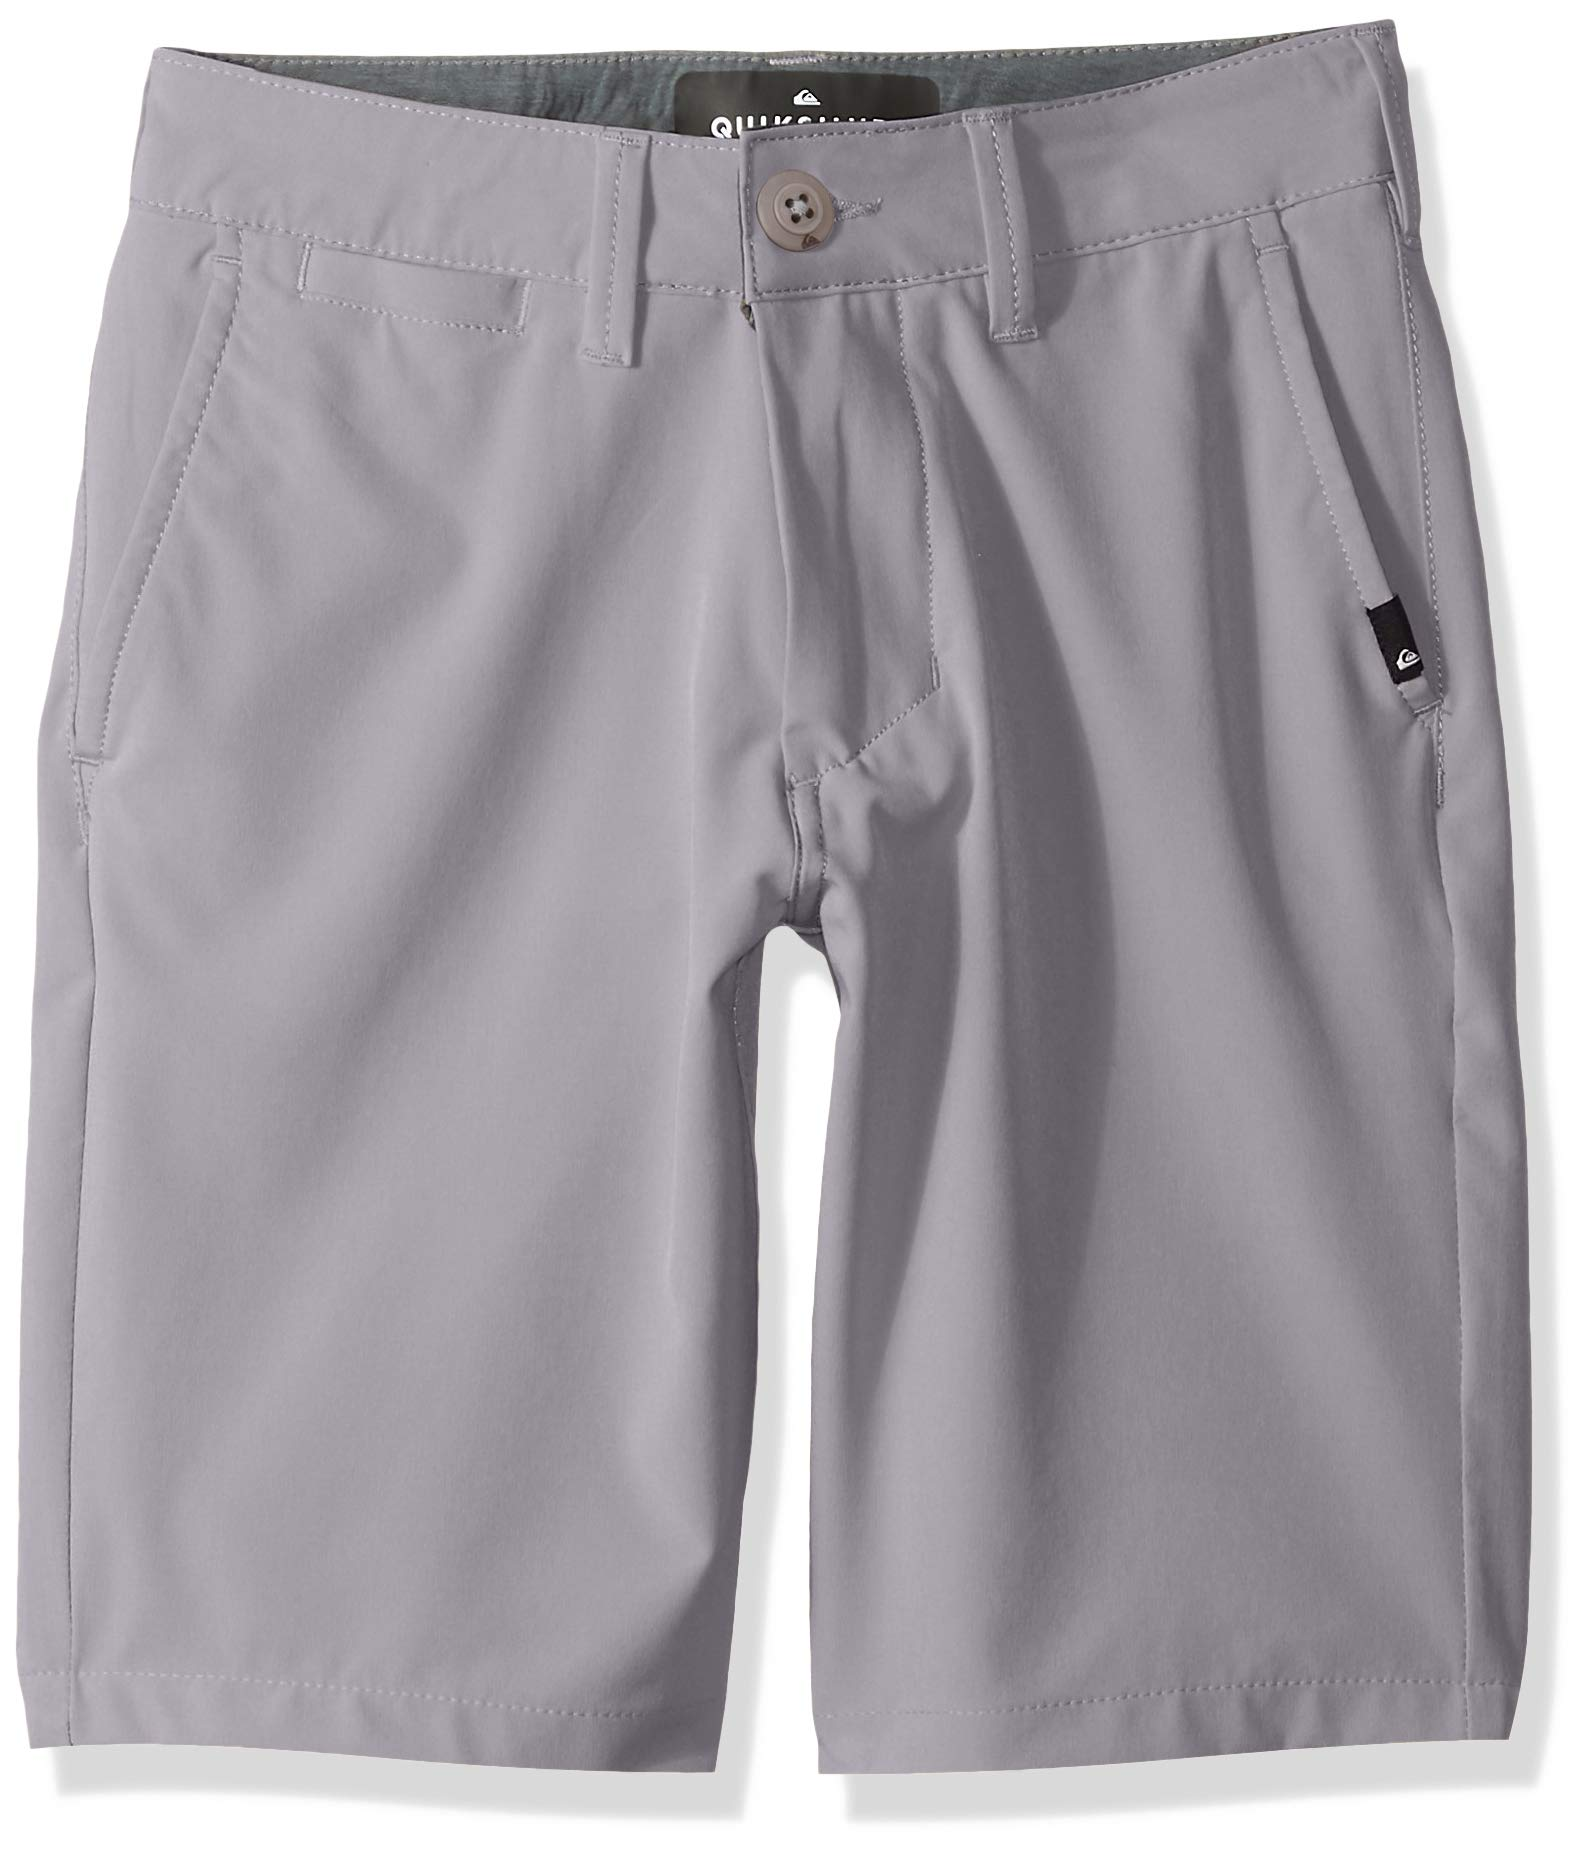 Quiksilver Boys' Big Union Amphibian Youth 19 Hybrid Short, Sleet, 23/10S